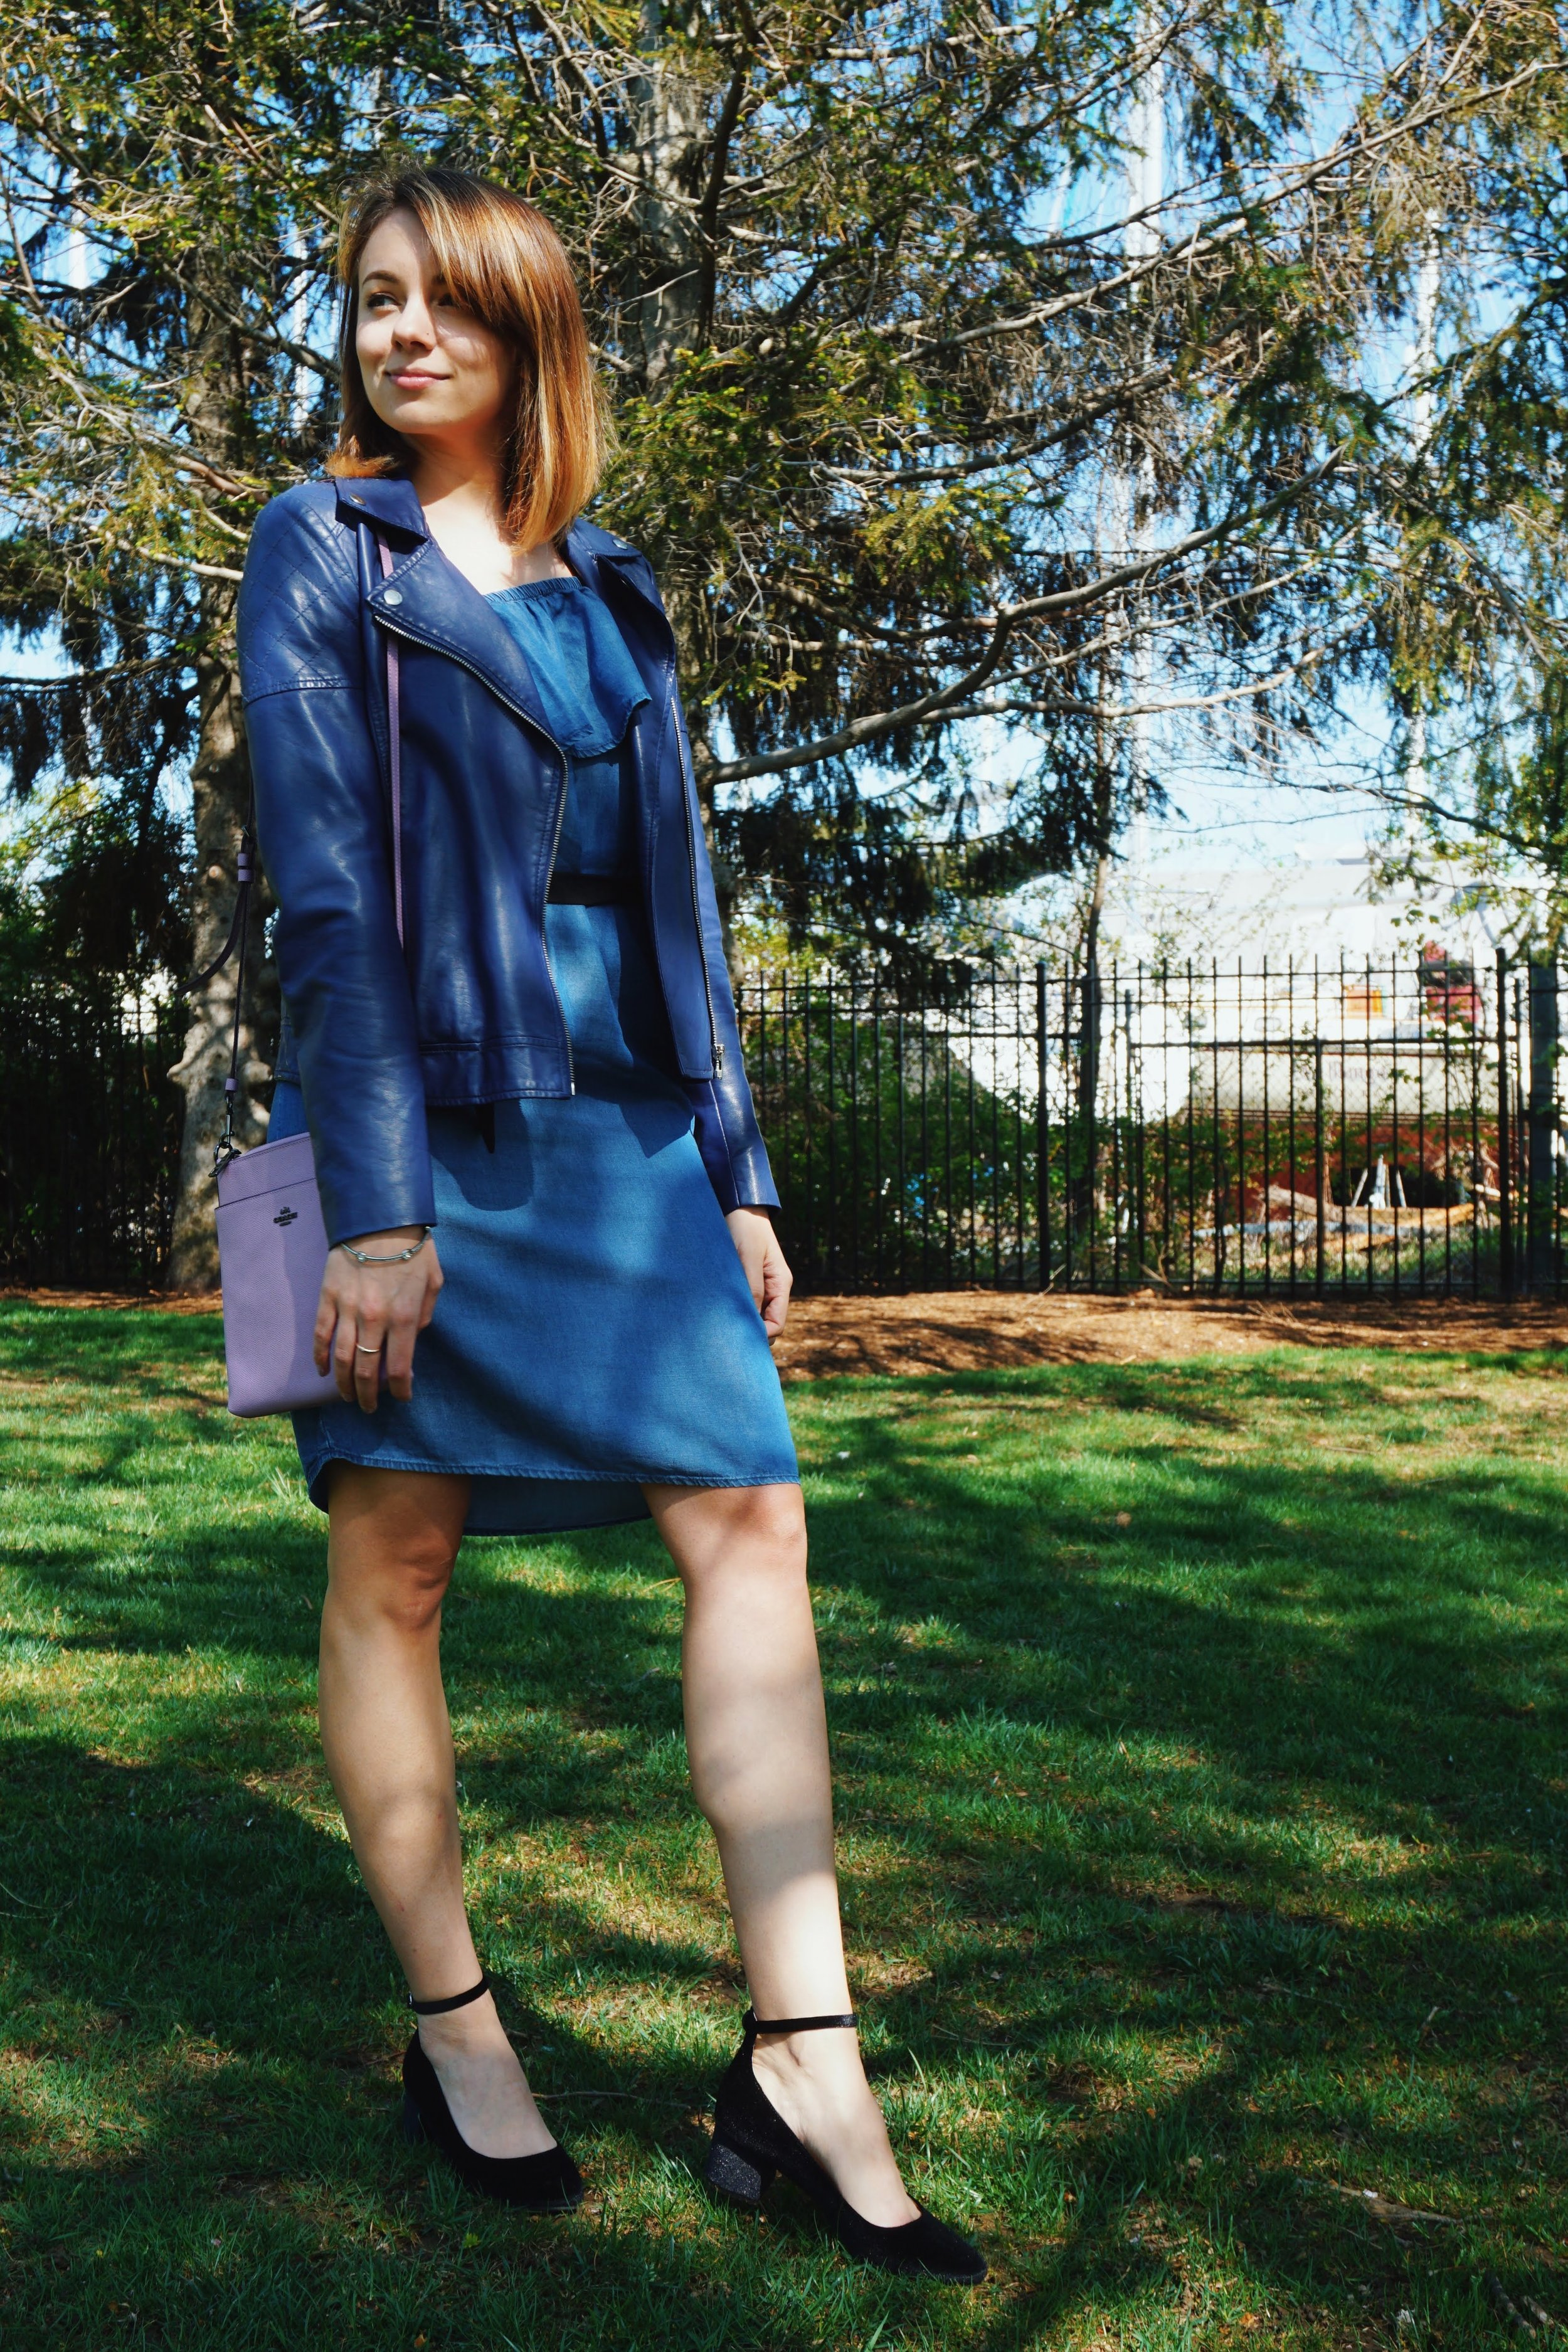 A girl in the park, wearing a denim dress, blue faux leather jacket, black pumps, and a lilac bag.